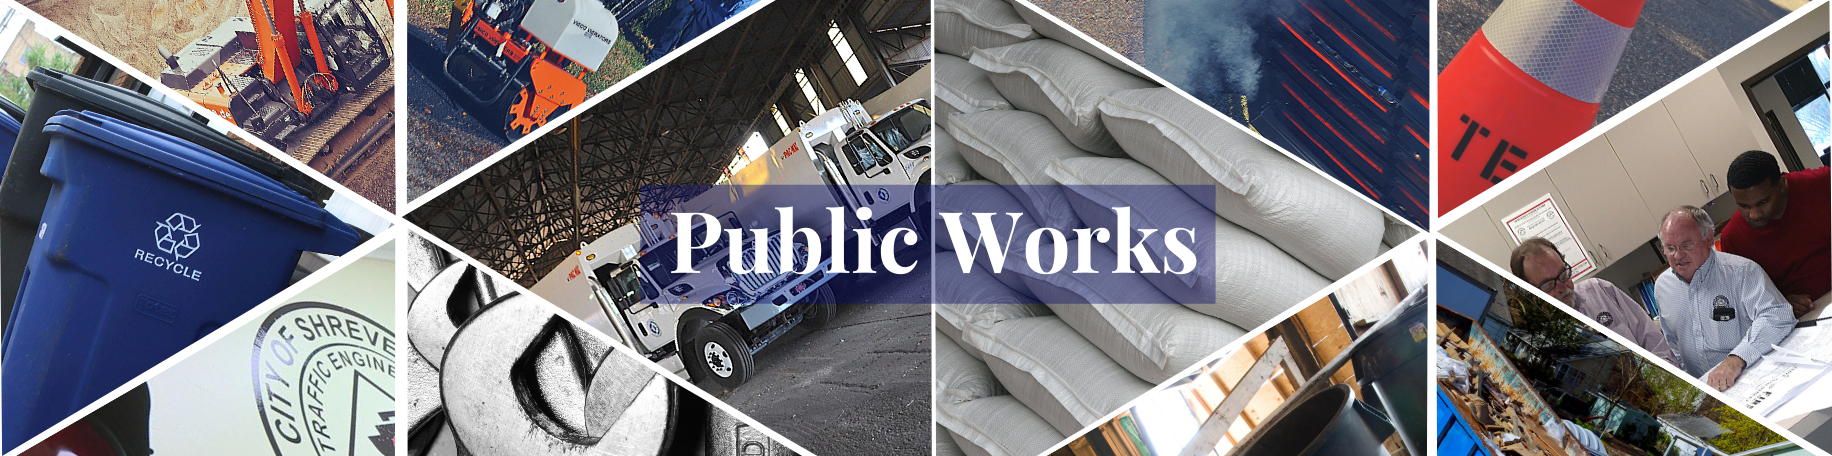 Department of Public Works Main Page